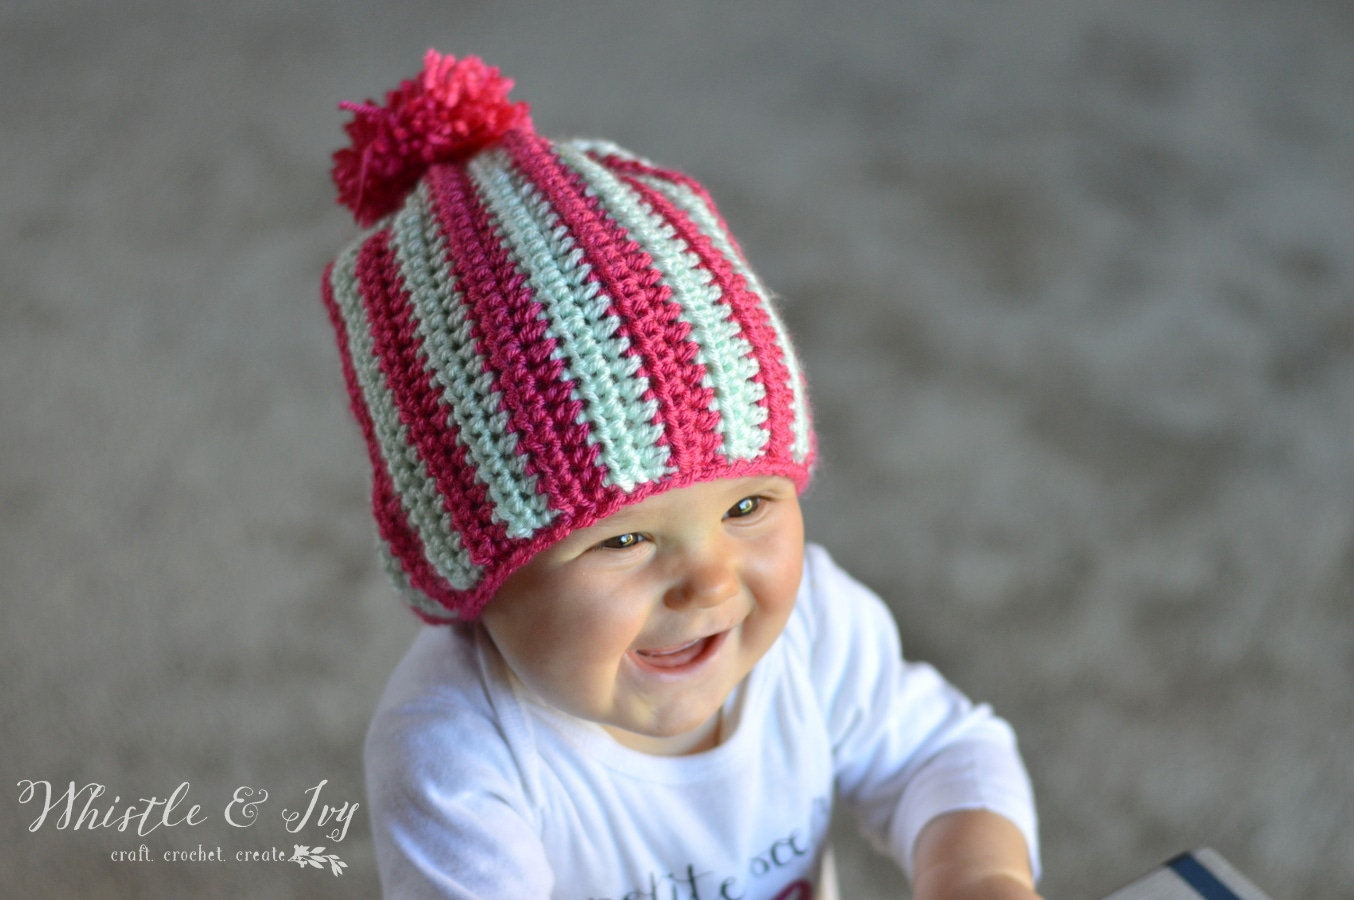 a4742380f31 Wonderland Blocks – A FREE Crochet Pattern · Crochet Vertical Stripe Baby  Beanie